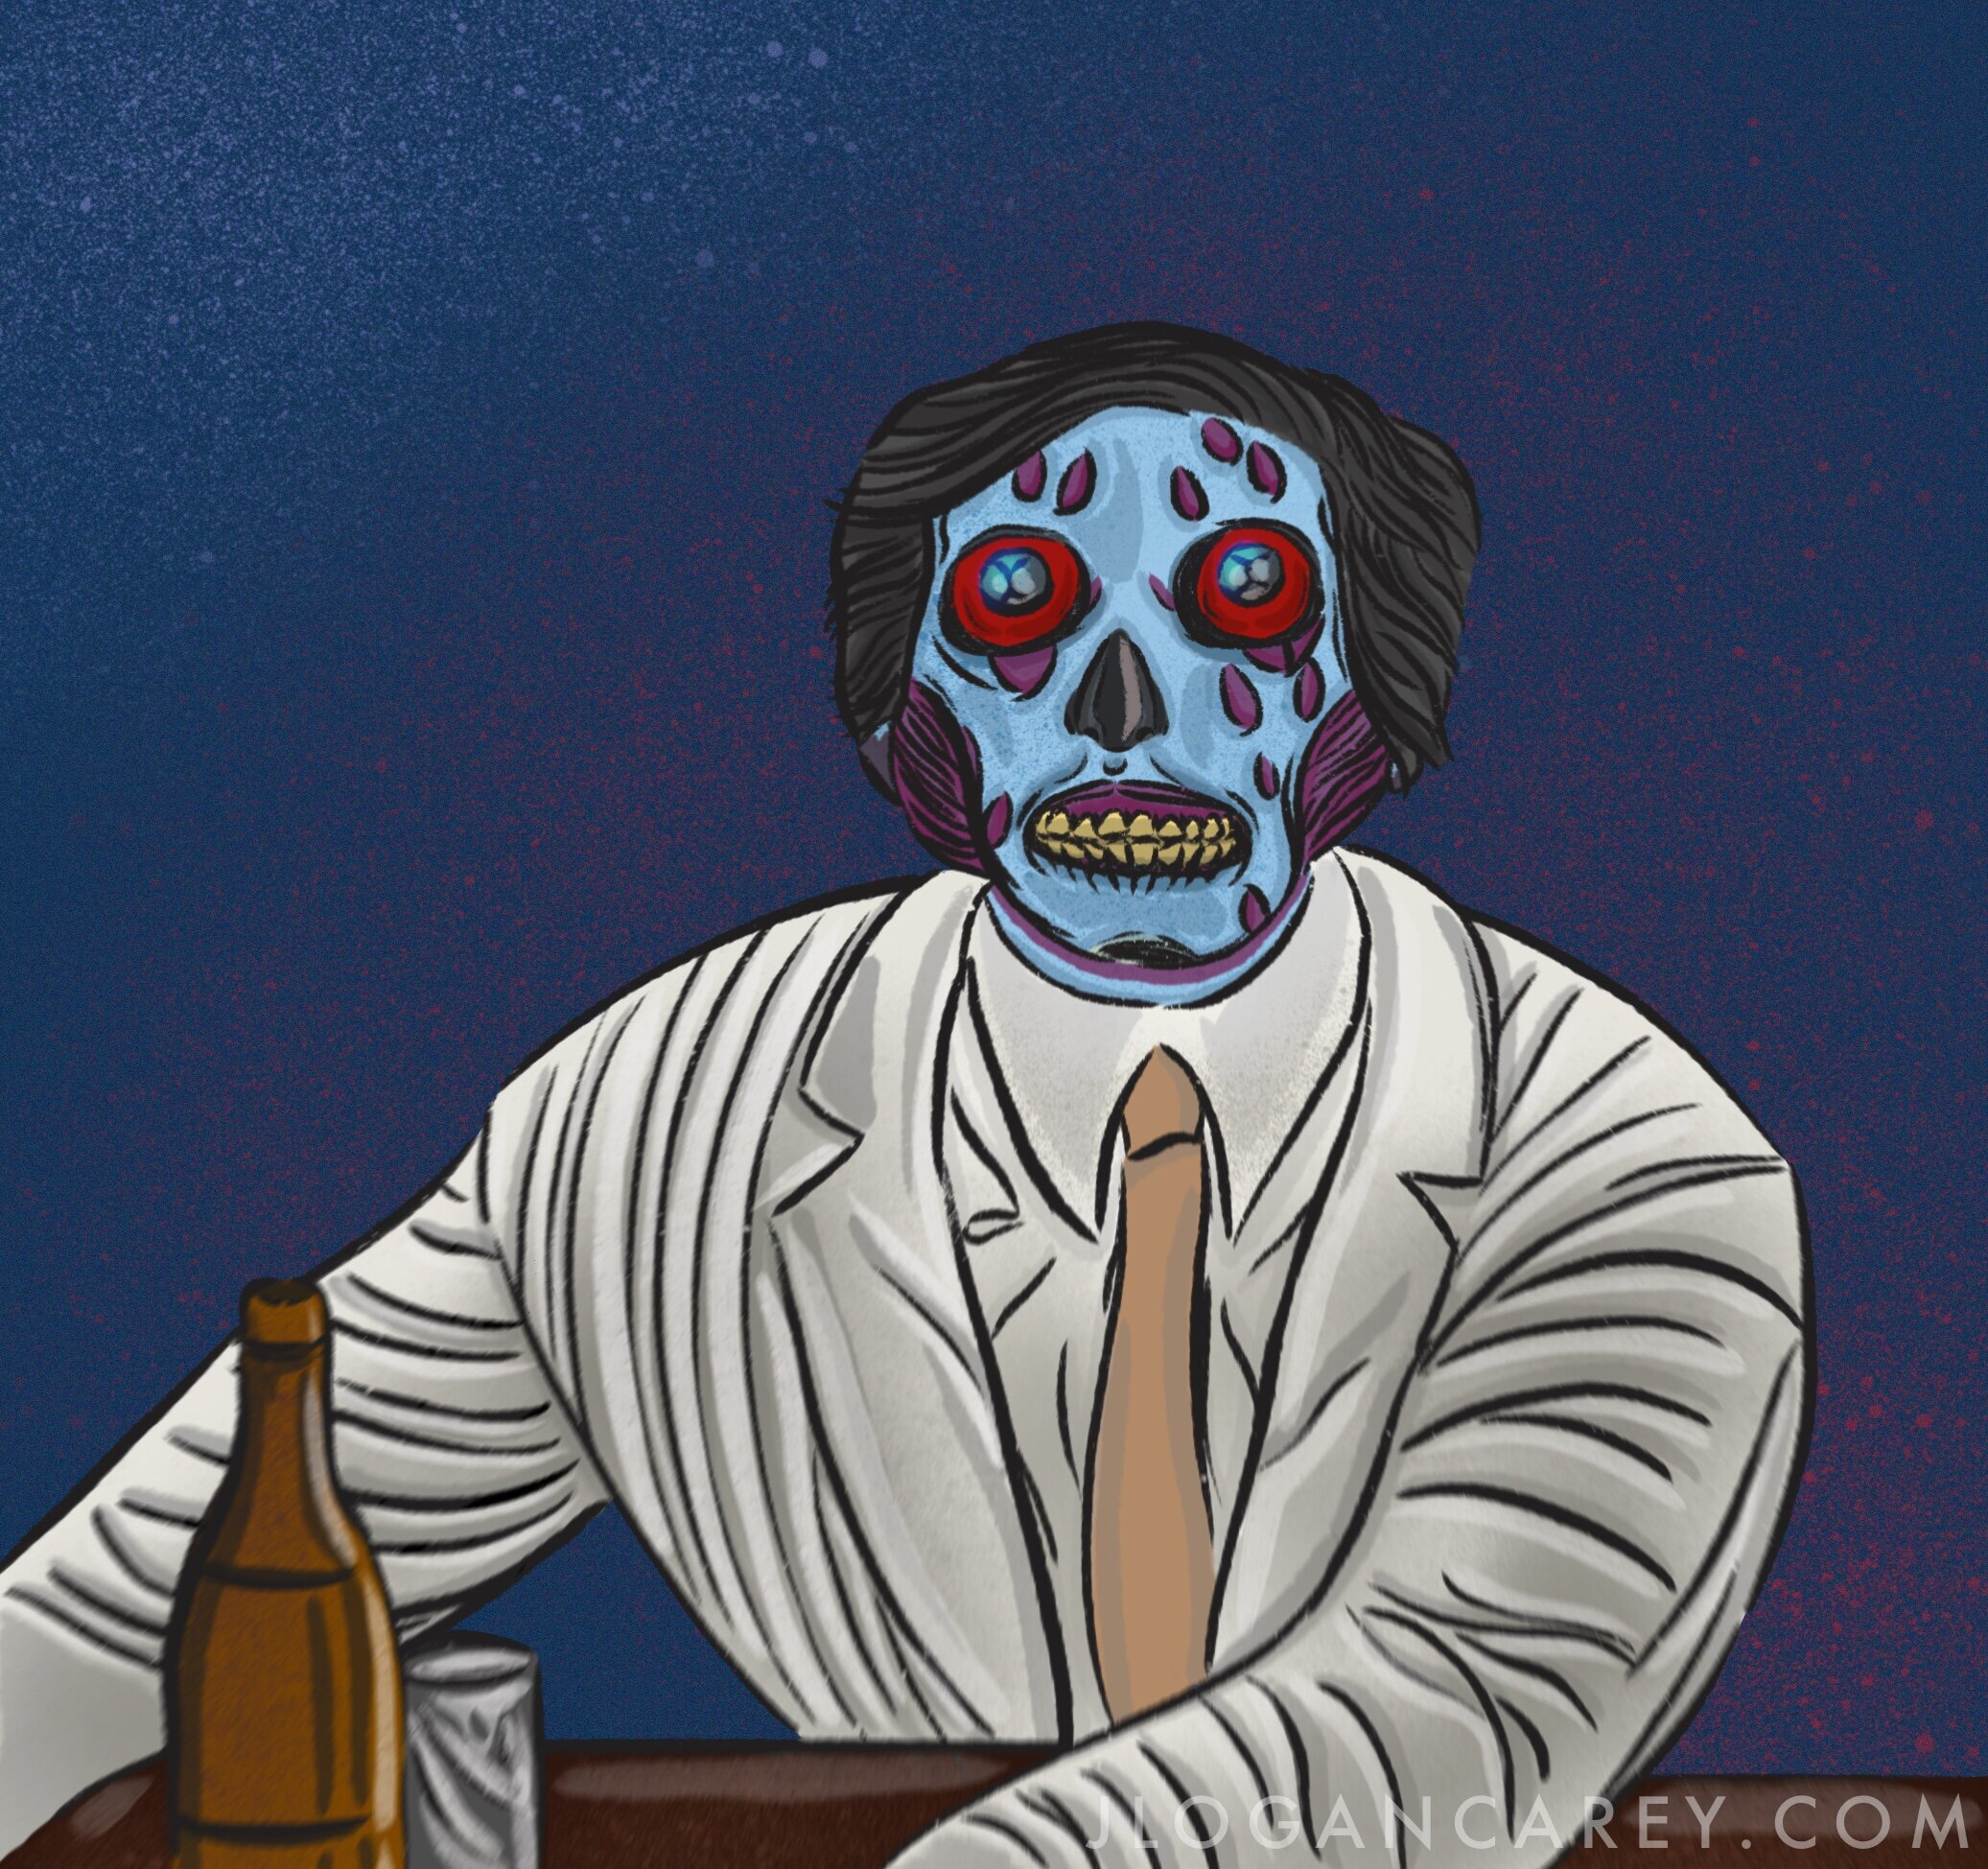 A sketch I did a while ago of the Ghoul watching TV in the bar.